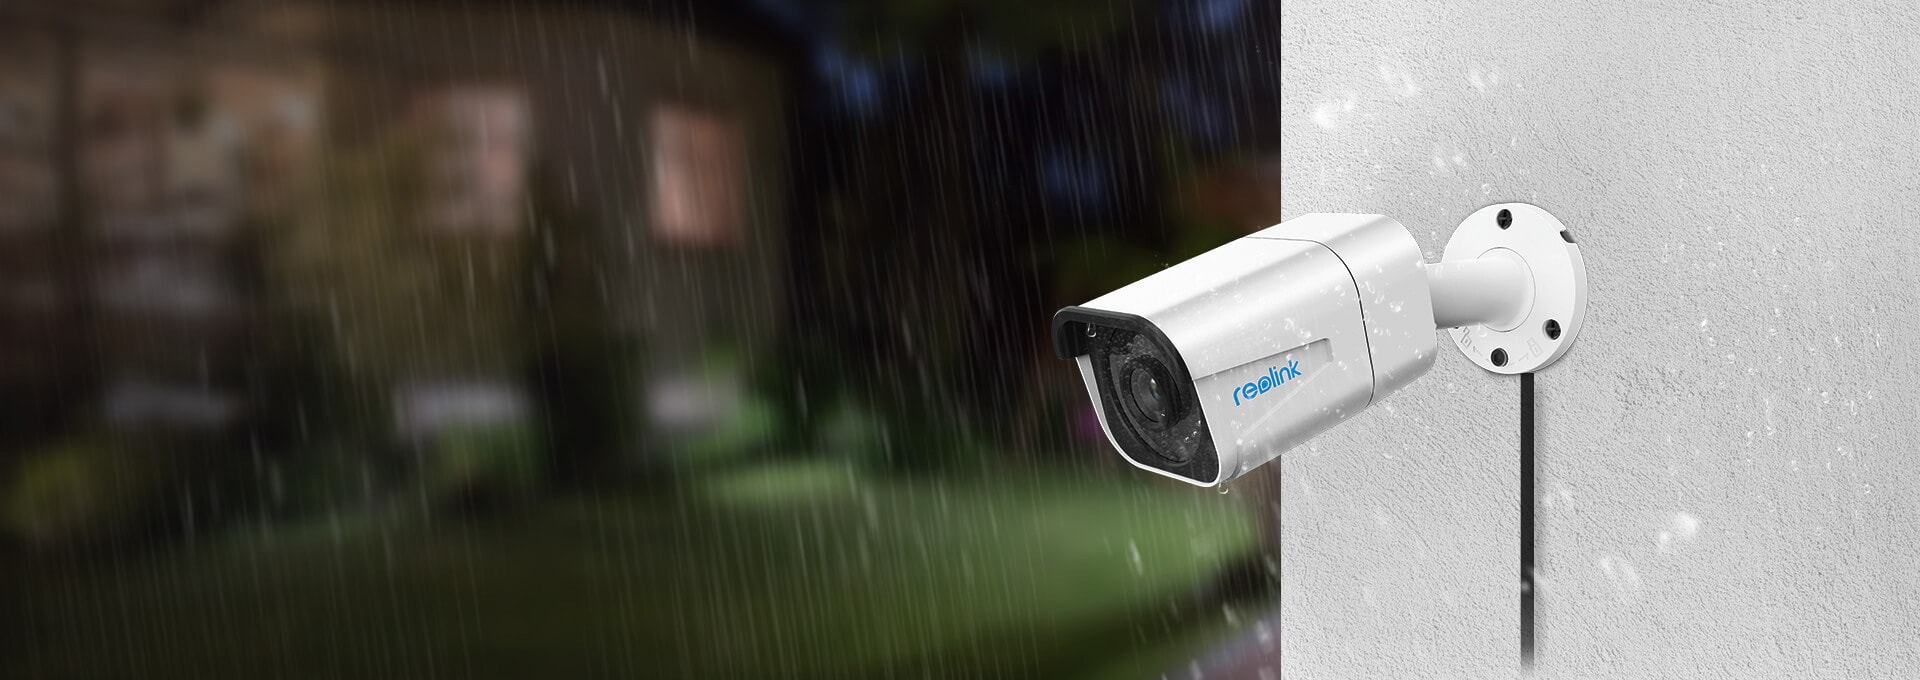 IP66 Weatherproof RLK8-800B4 4K Security Camera System